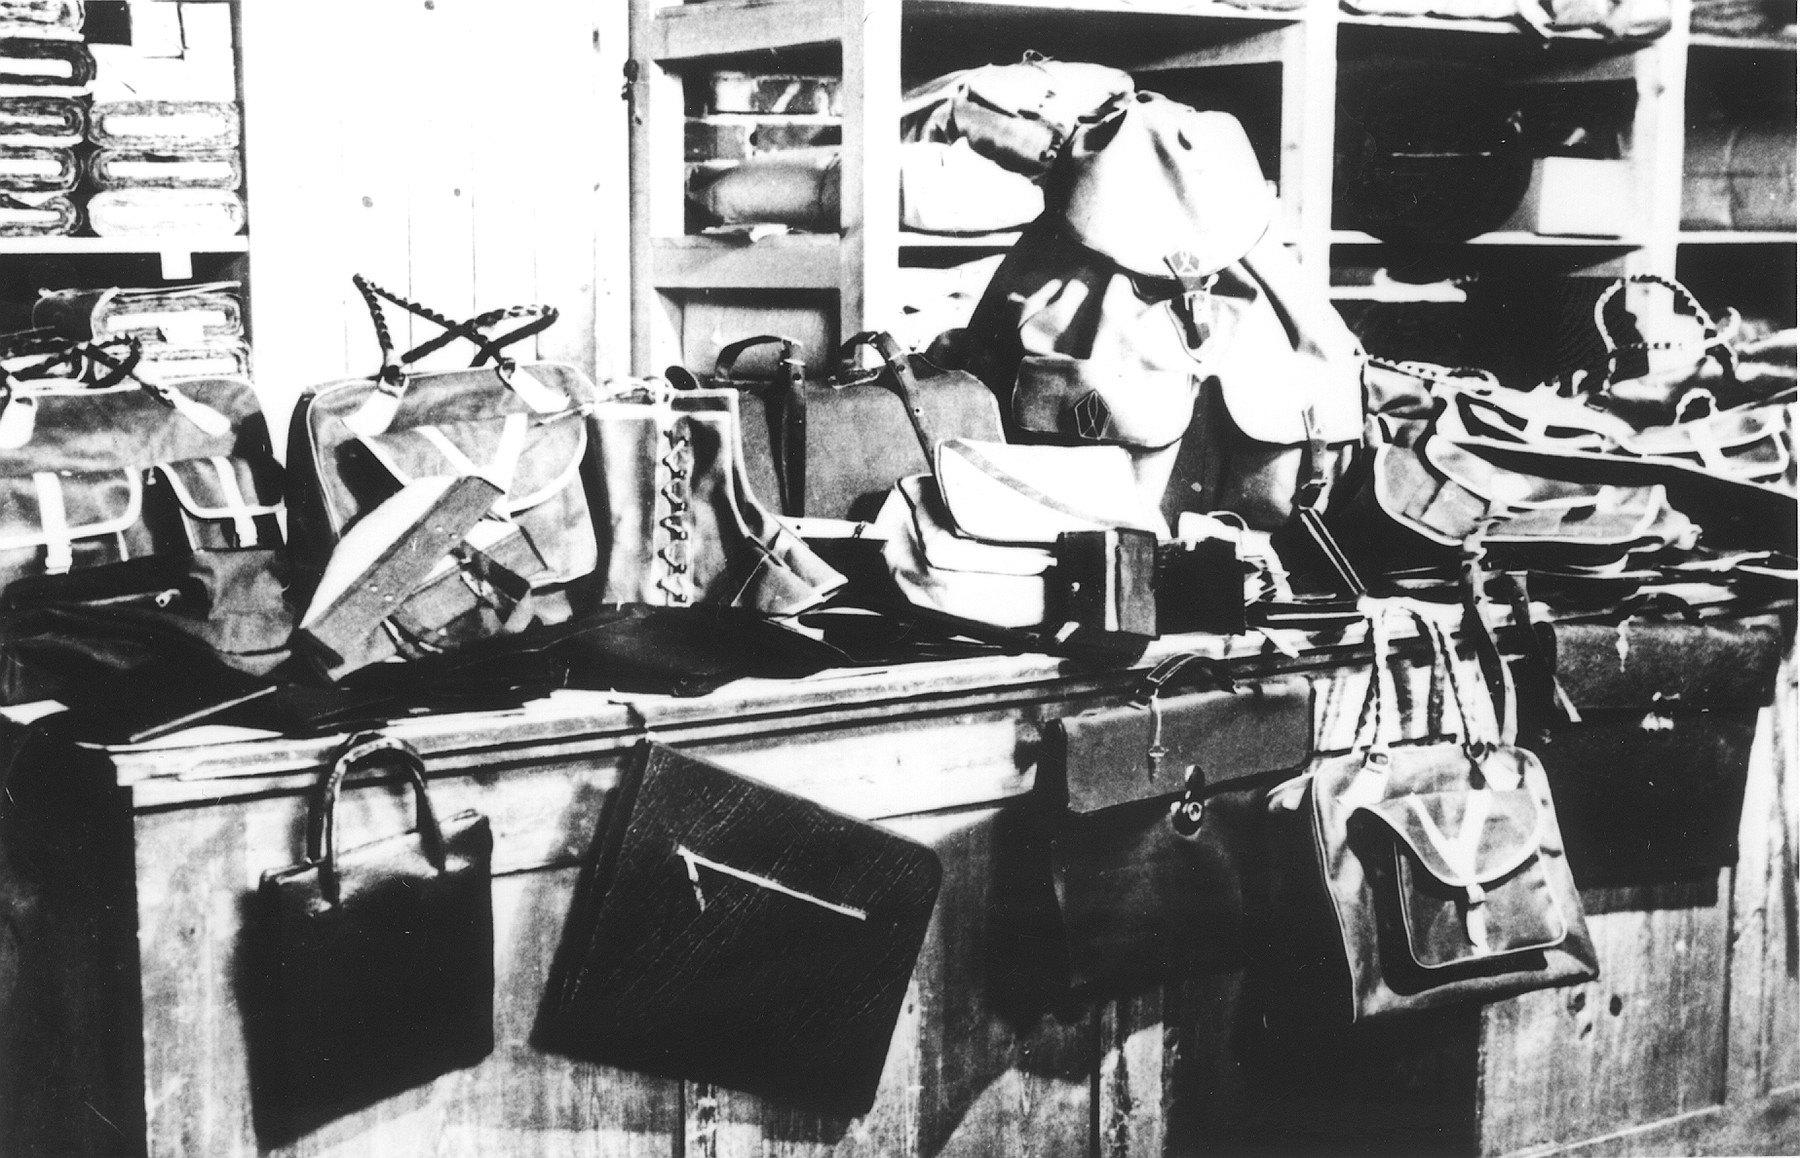 Handbags and valises made by prisoners are piled in a warehouse